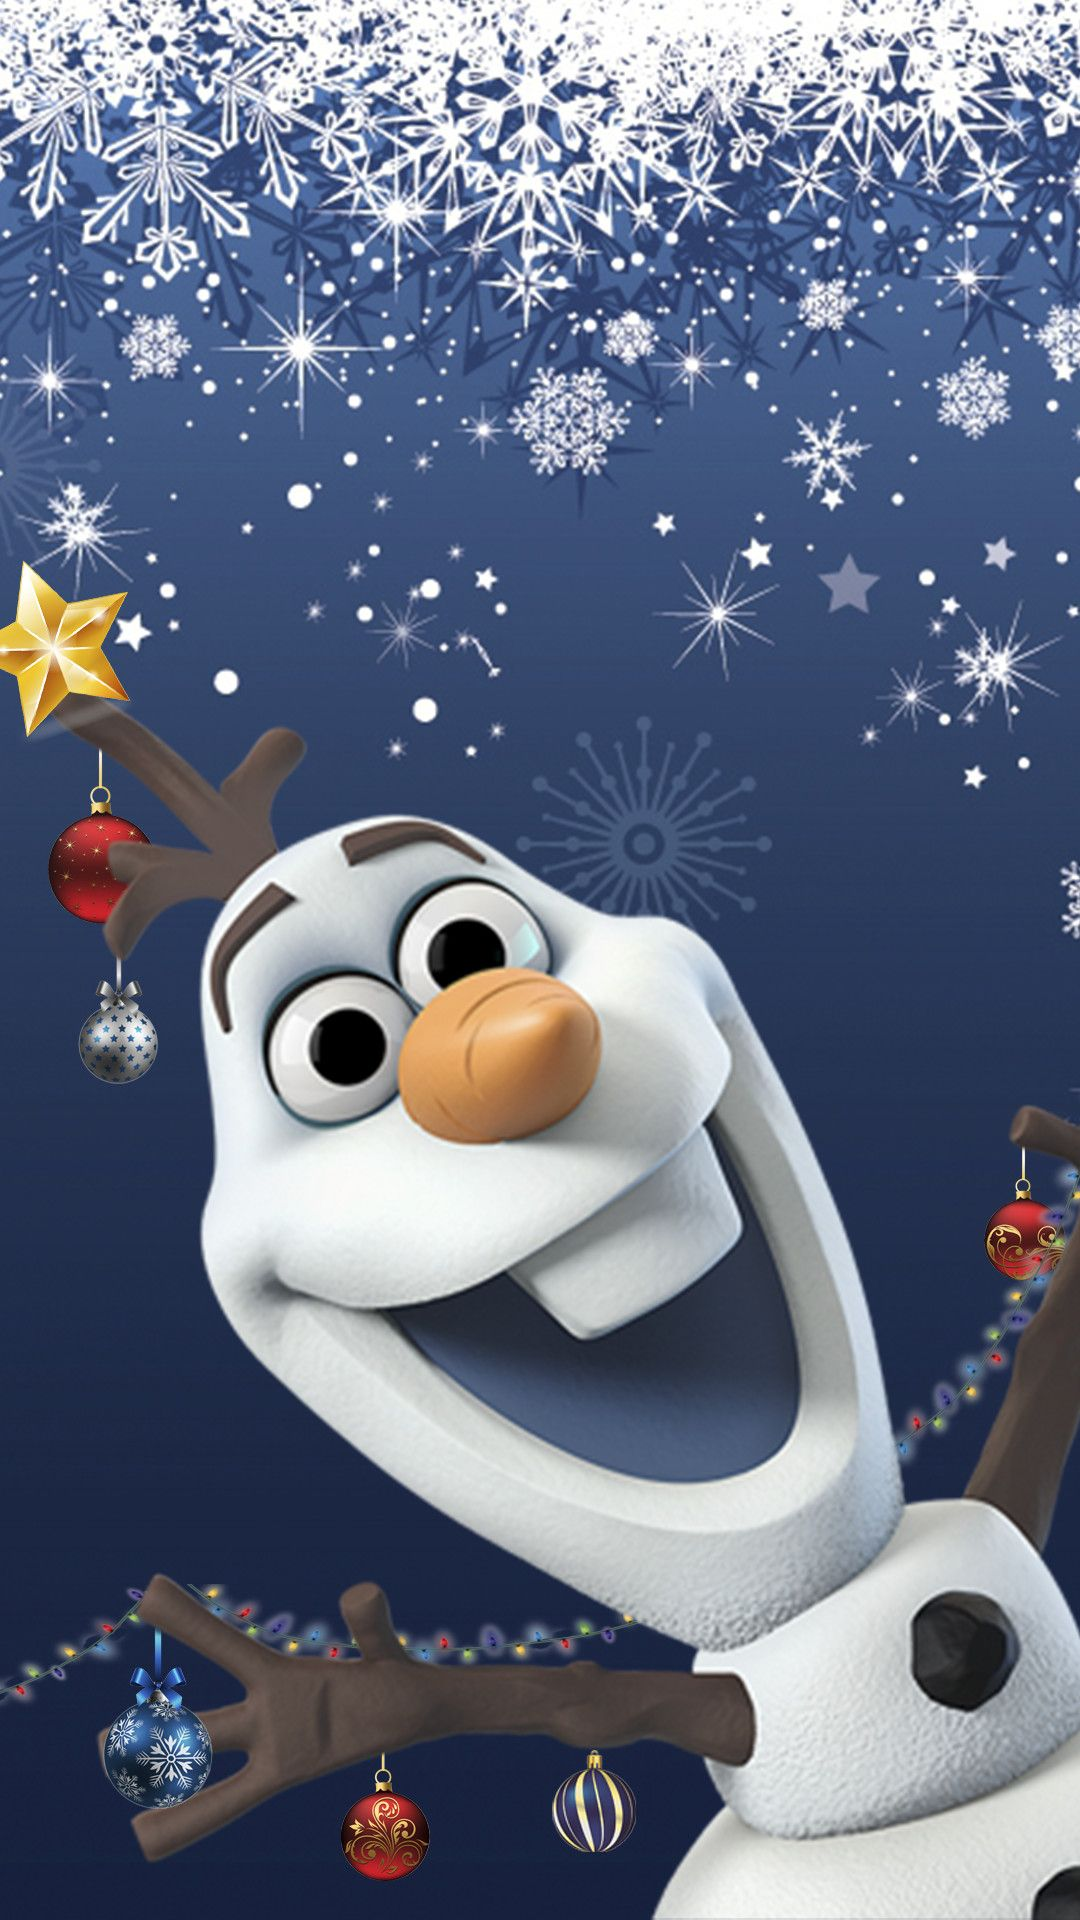 62 Olaf Christmas Wallpapers On Wallpaperplay Cute Christmas Wallpaper Wallpaper Iphone Christmas Cute Disney Wallpaper